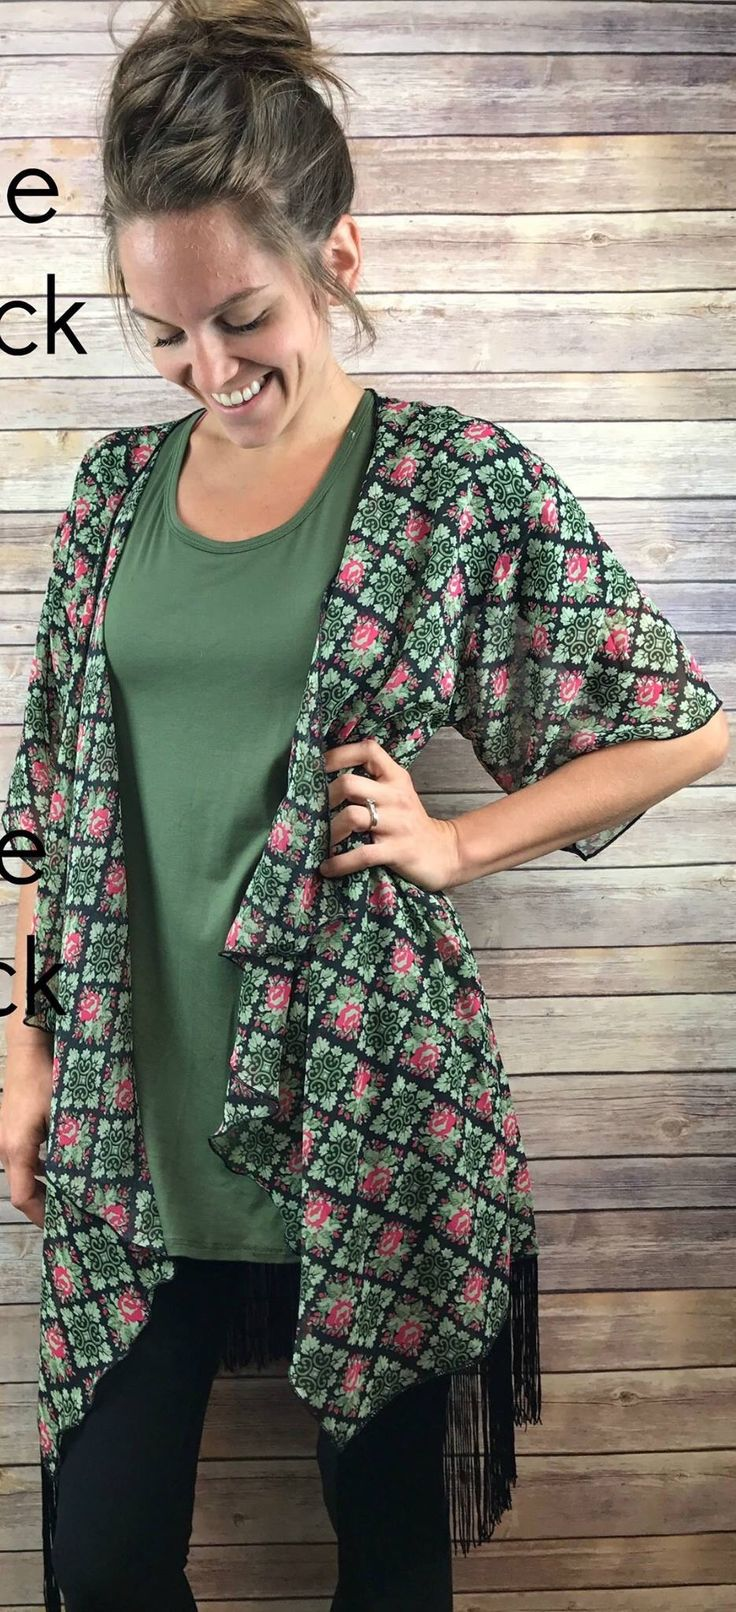 Monroe perfect leggings  LuLaRoe Coral Svec